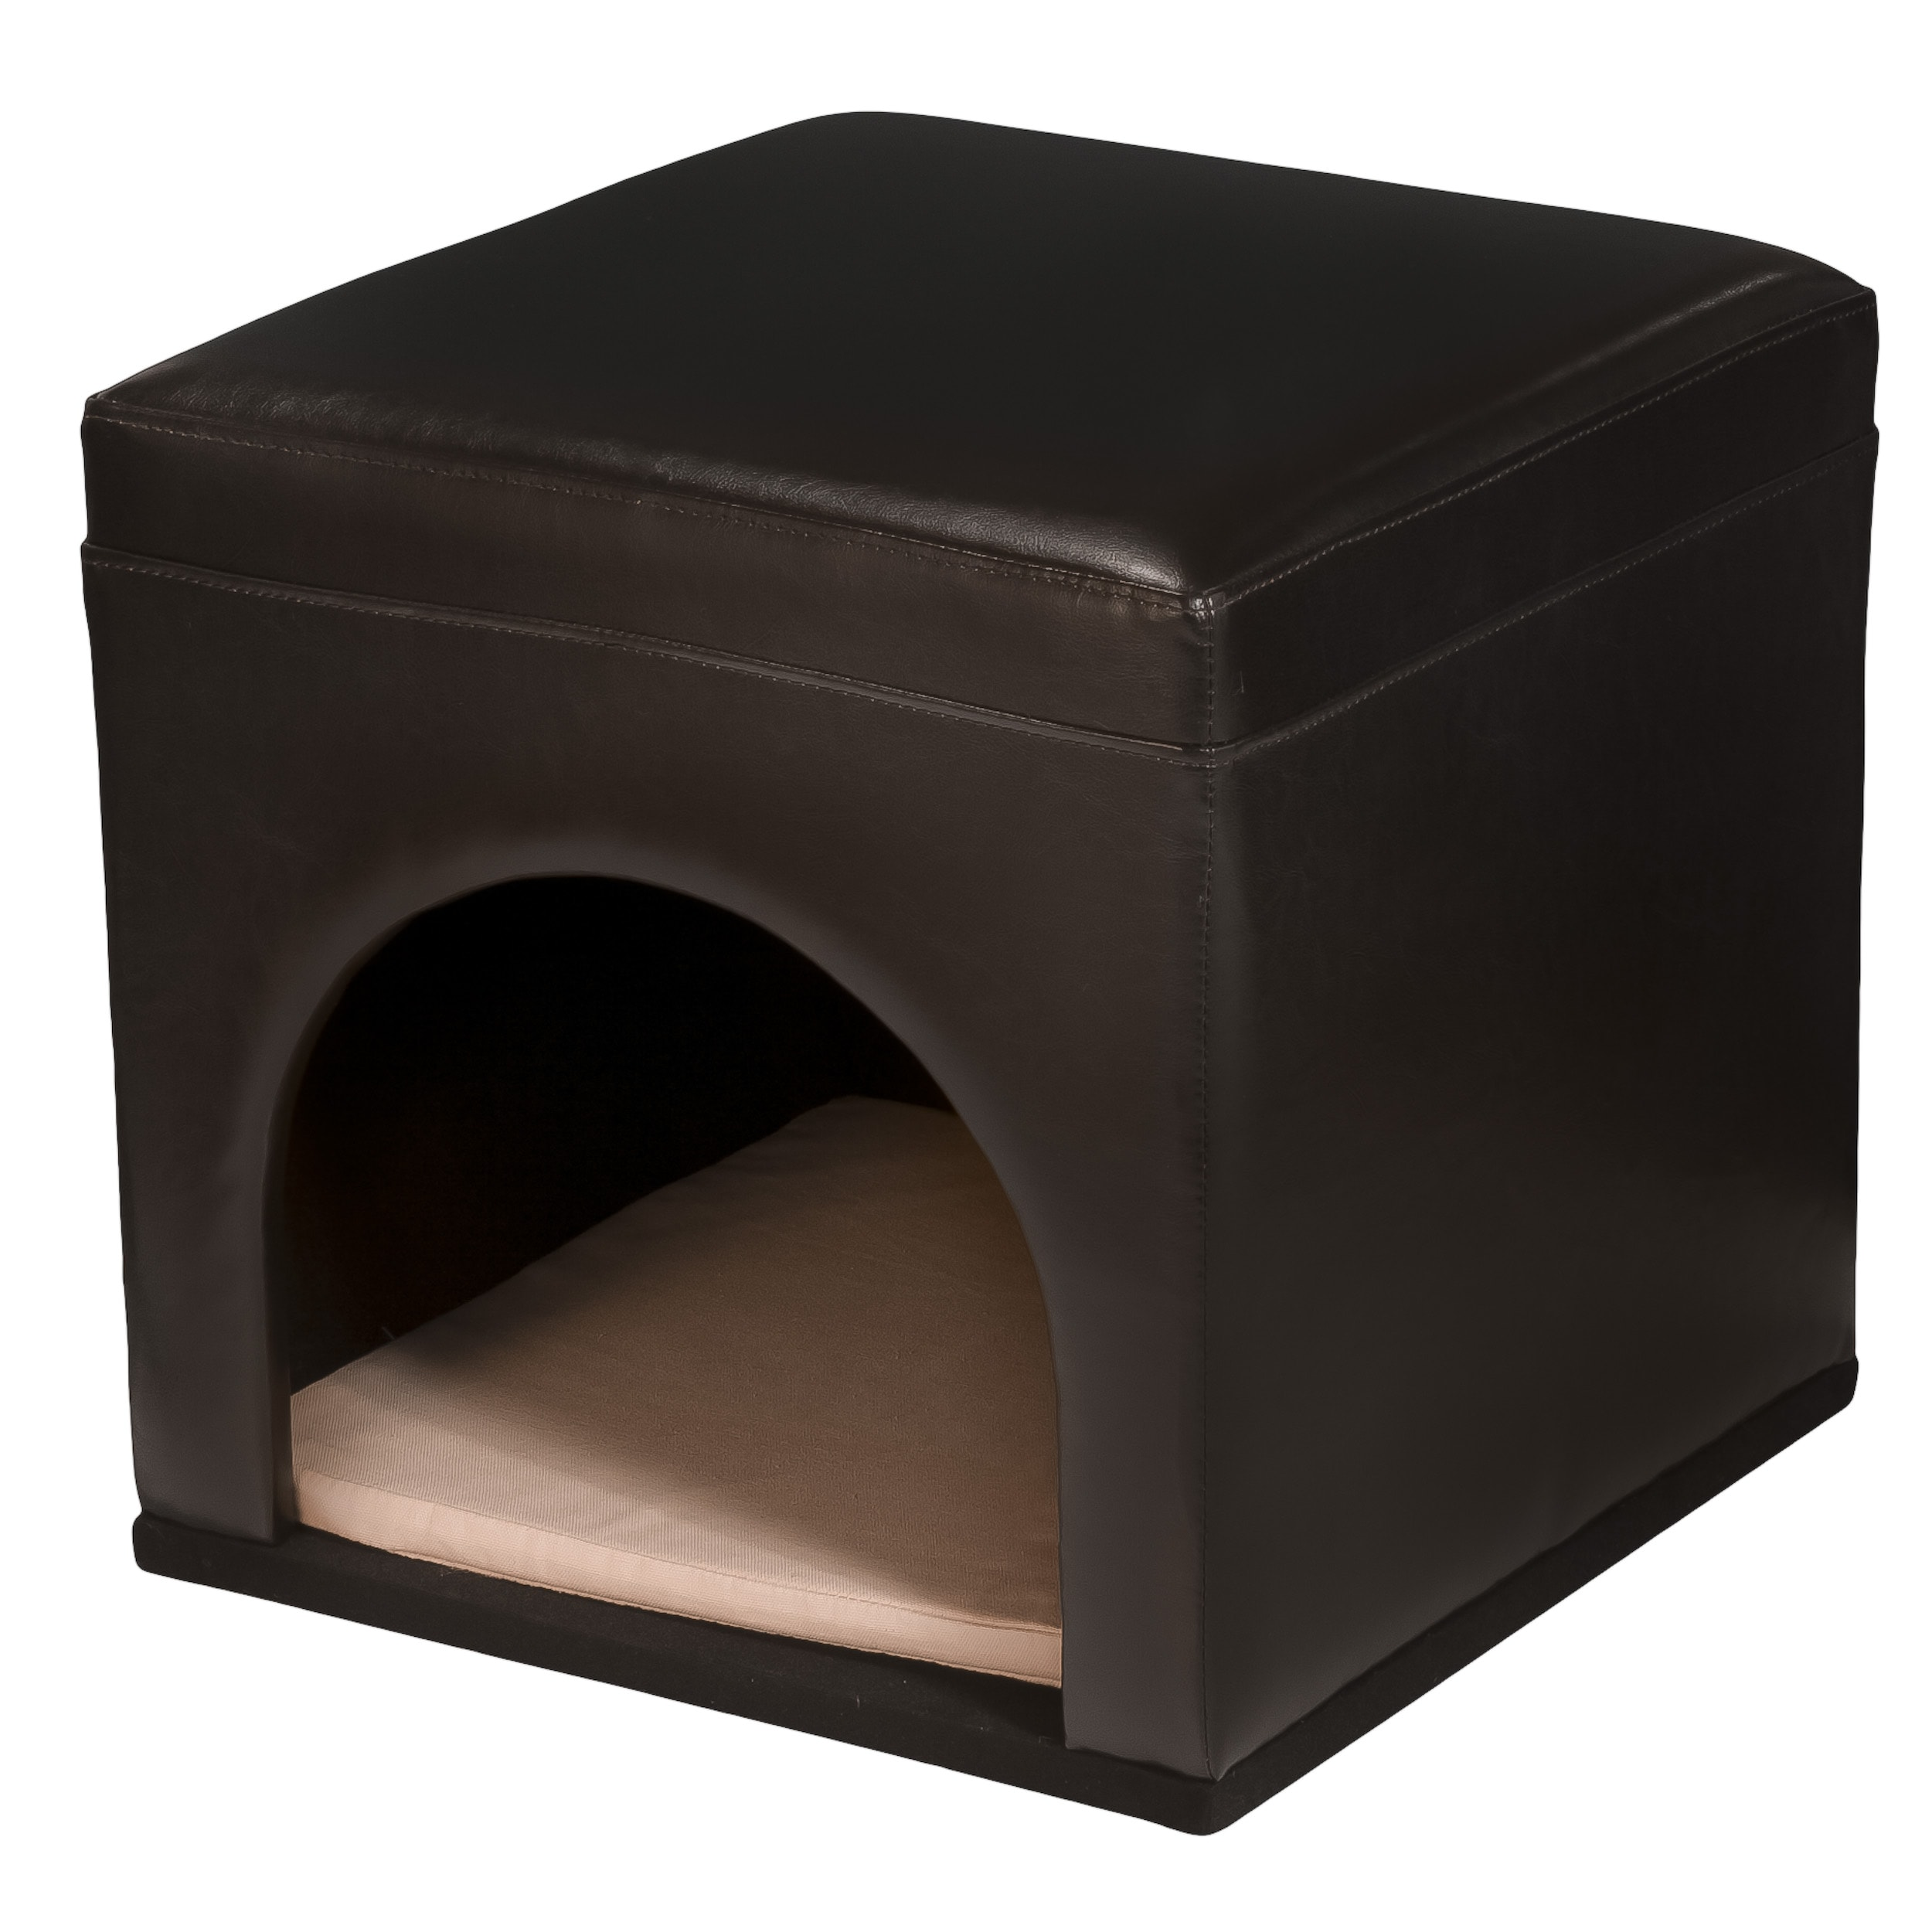 Assembled Espresso Bonded Leather Pet Bed (17.5 x 18.3 x 18.3) by Christopher Knight Home